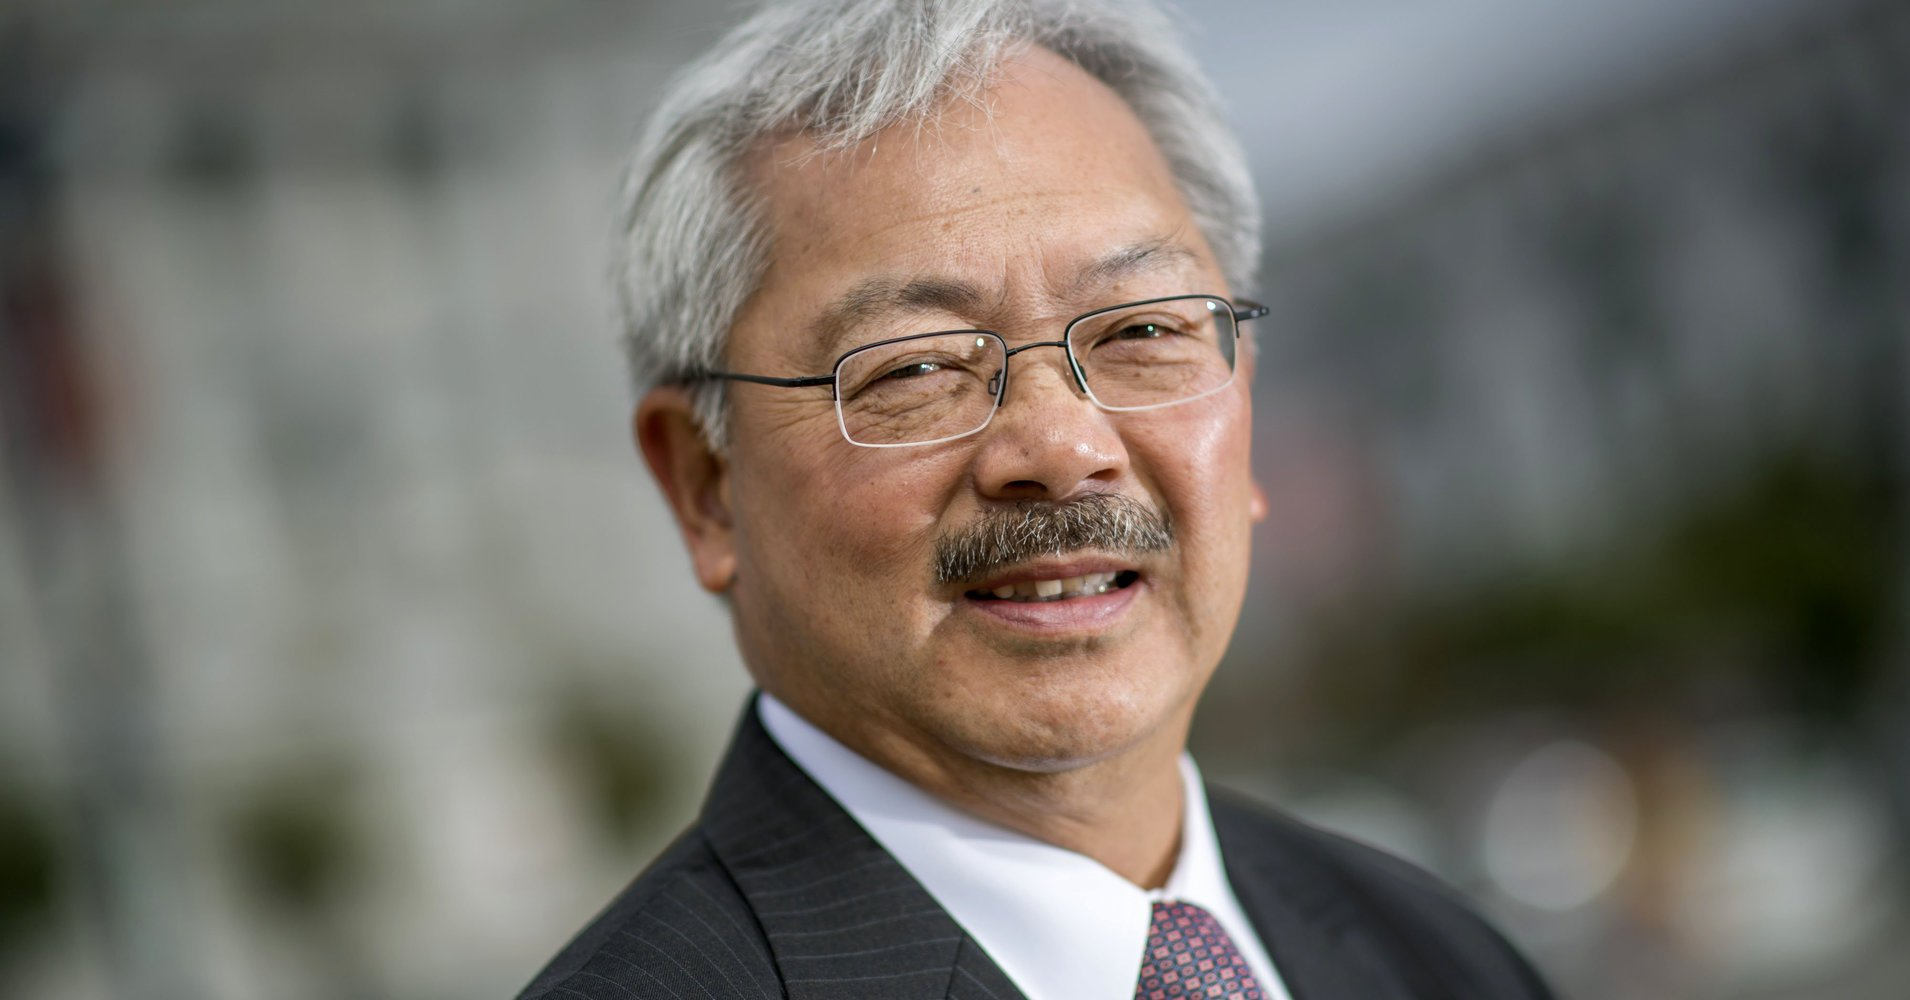 San Fransisco Mayor Ed Lee has died. He was 65 https://t.co/rLedh1D9Ig #obit https://t.co/k8mUSSuAxX